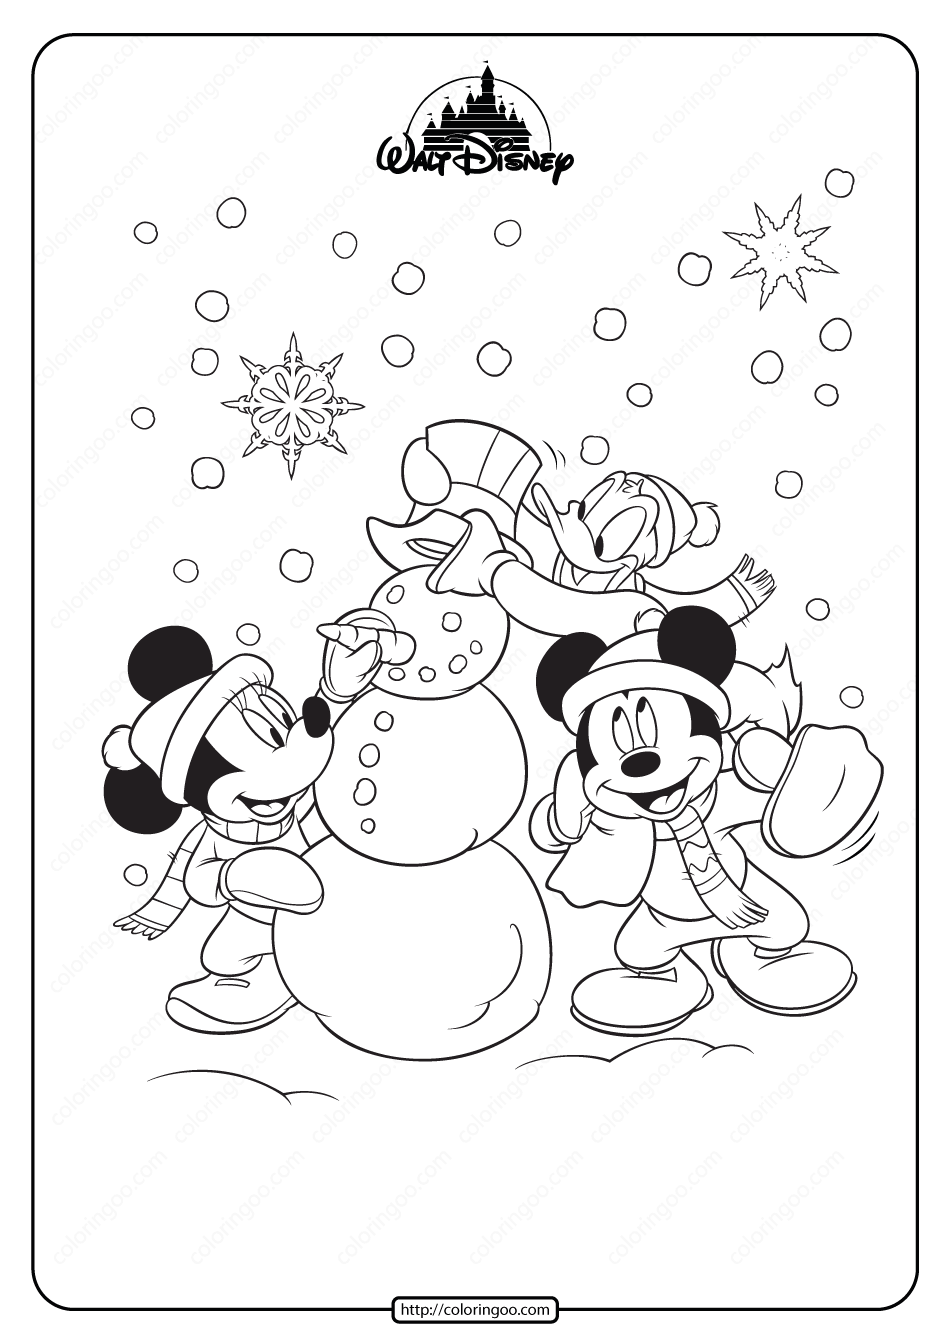 Mickey Minnie Mouse and Donald Duck Coloring Page